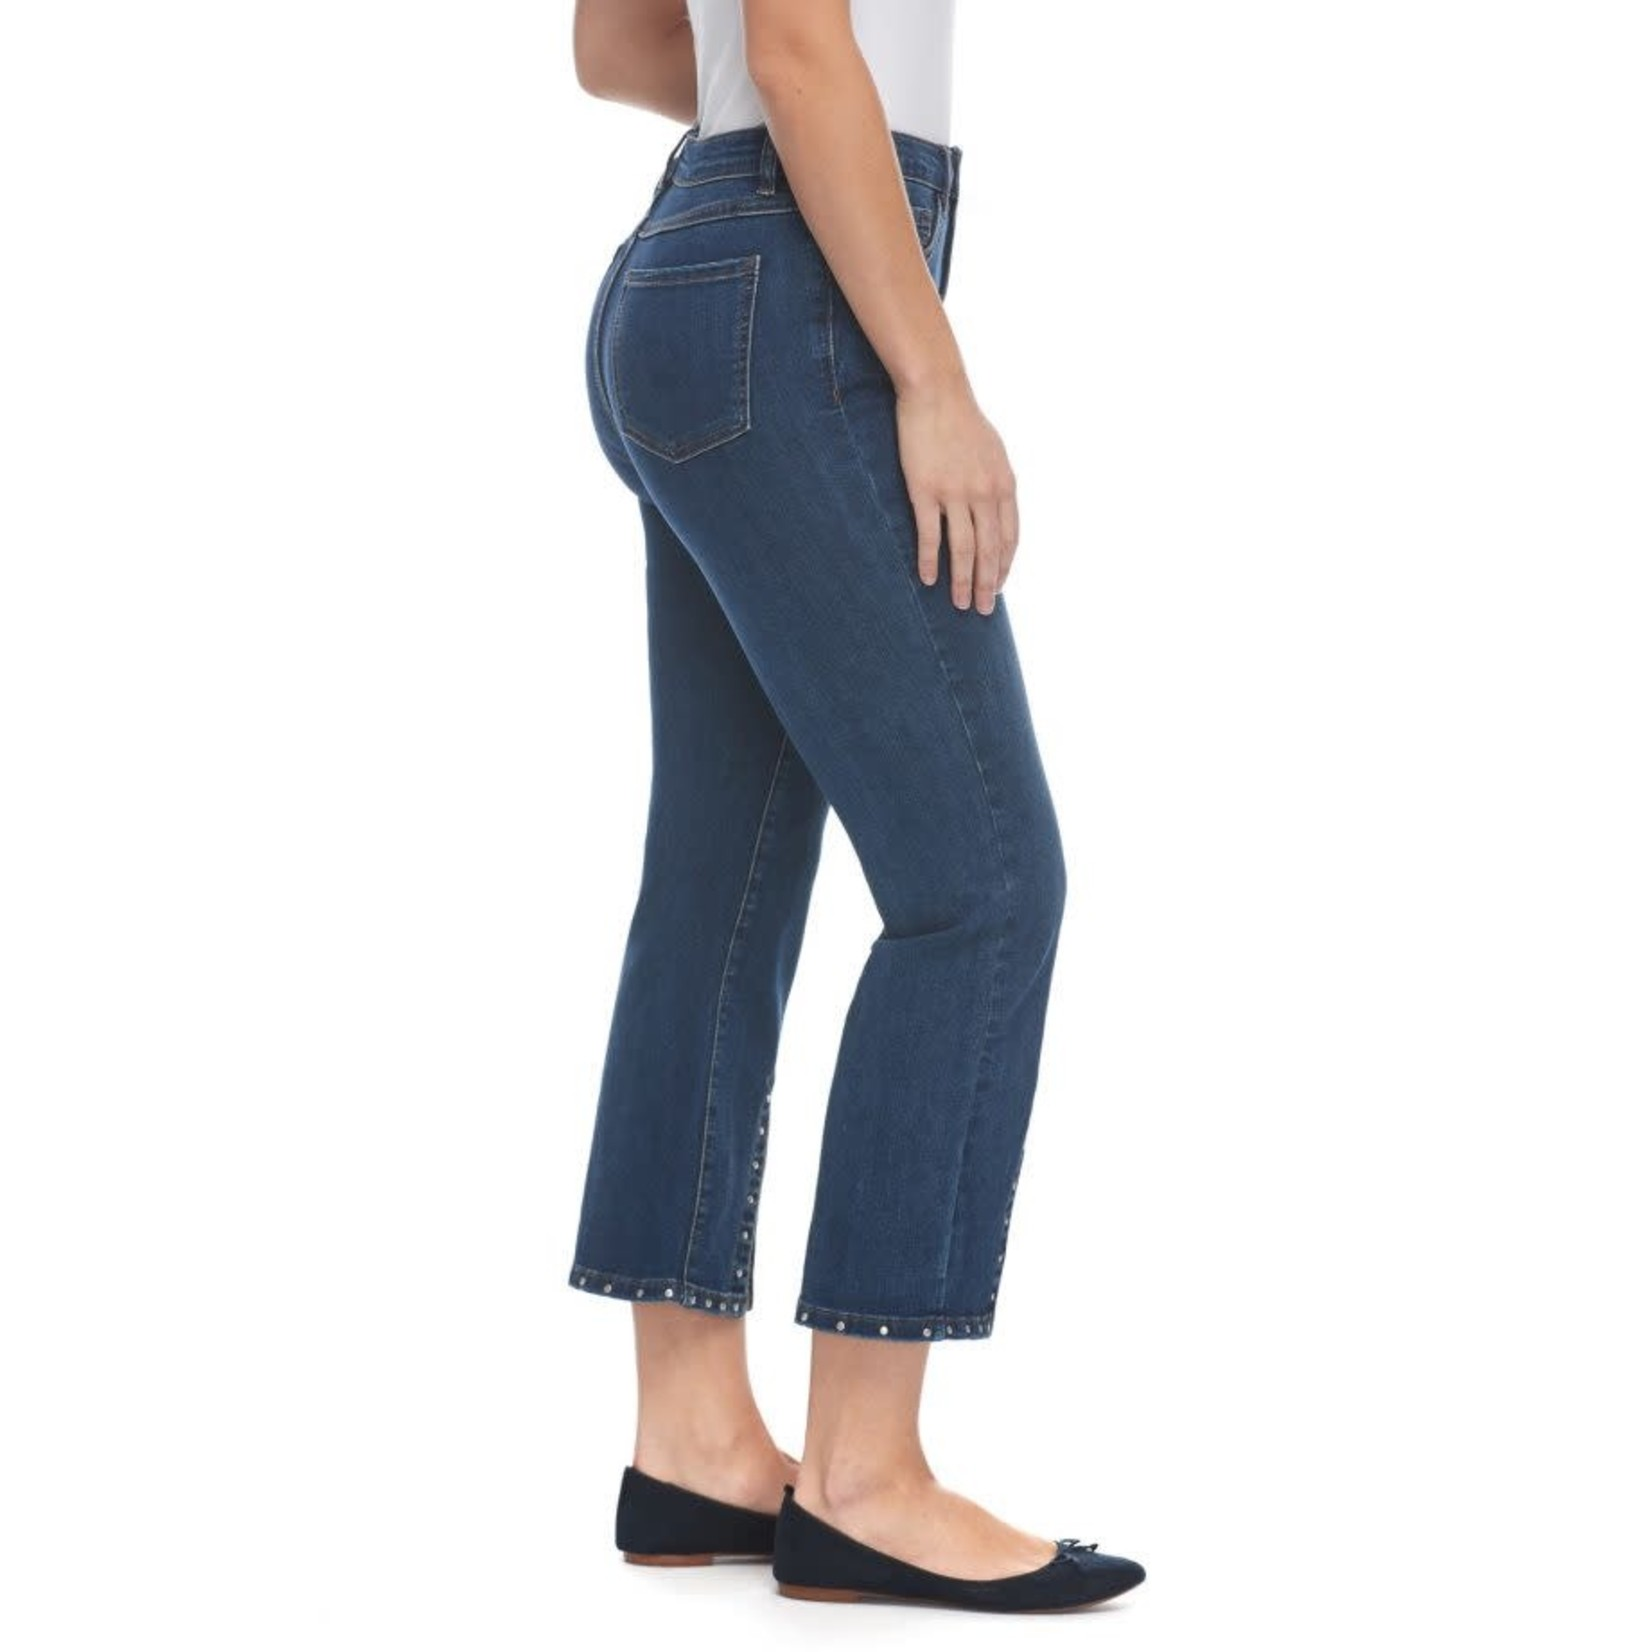 Olivia Flare Jeans w/ FrontSlit and RivetTrim